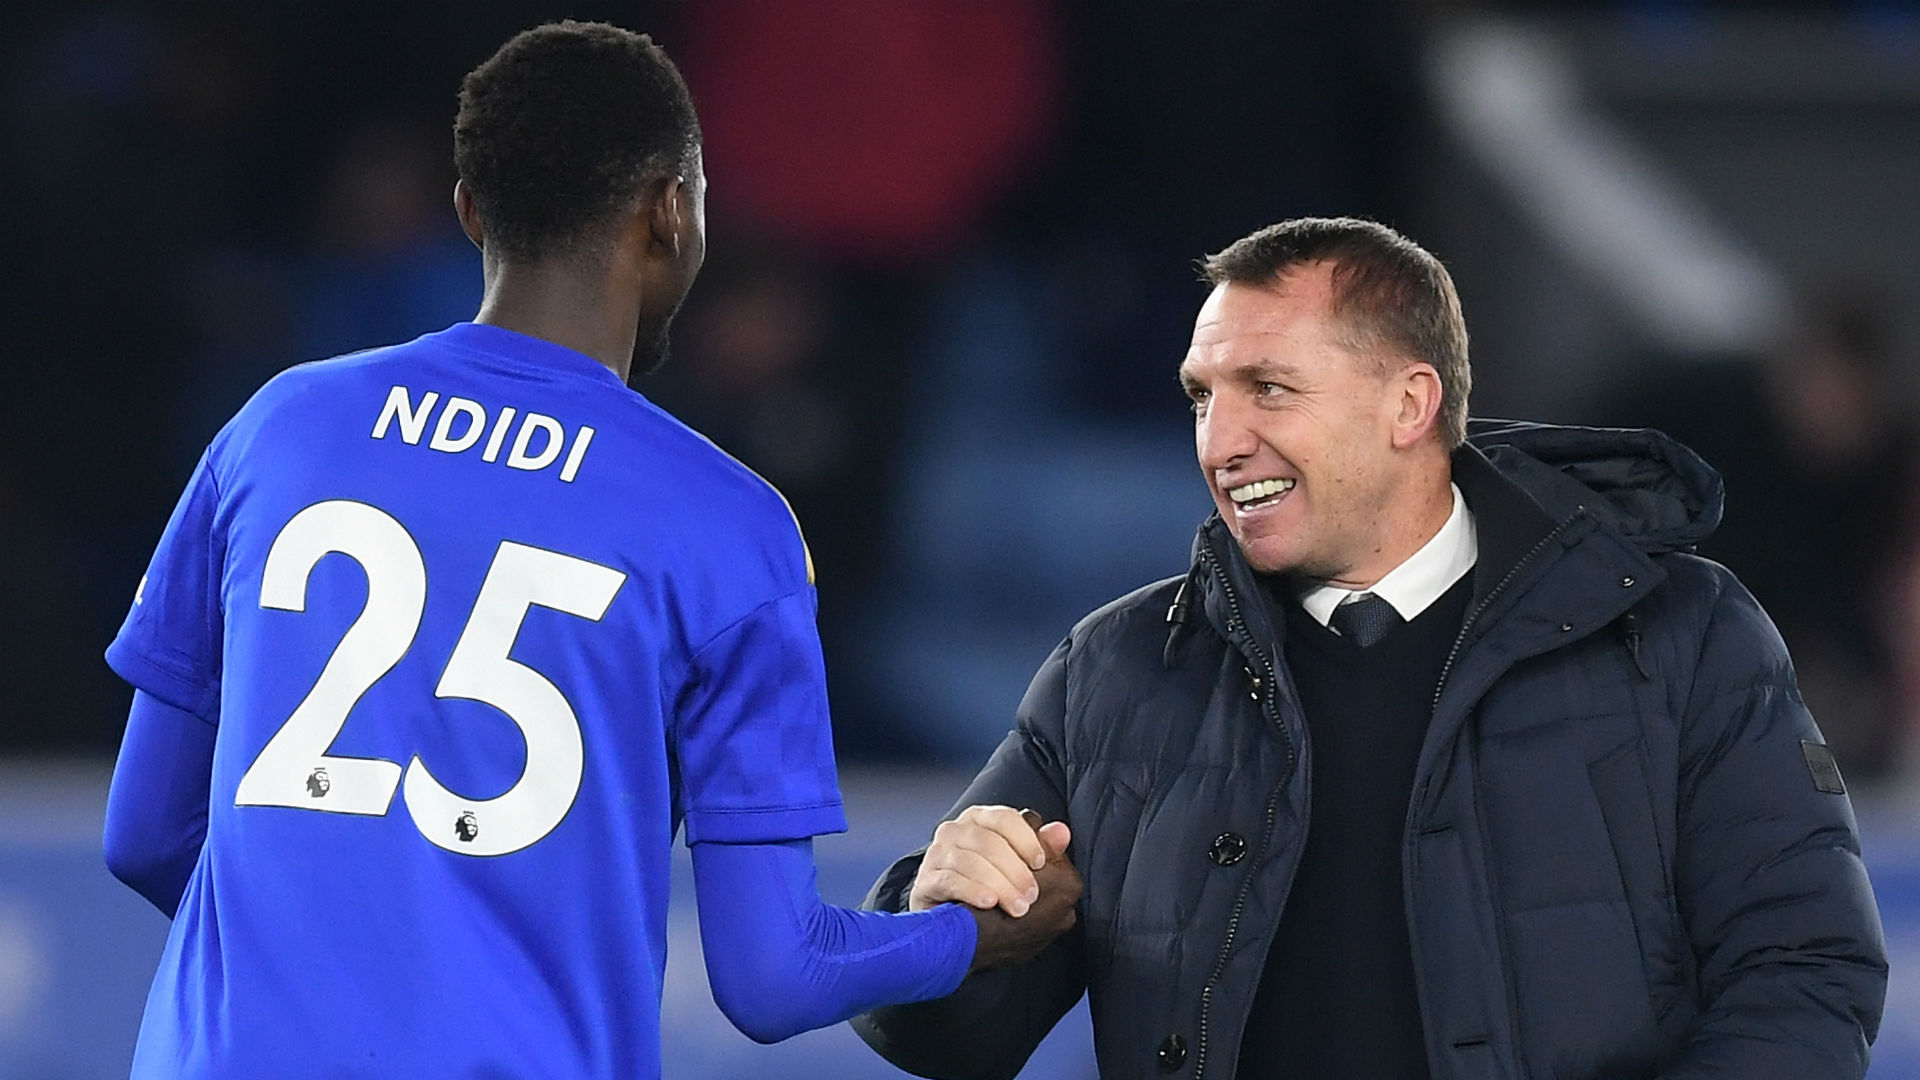 'I now understand simple things'- Ndidi applauds Rodgers' impact at Leicester City